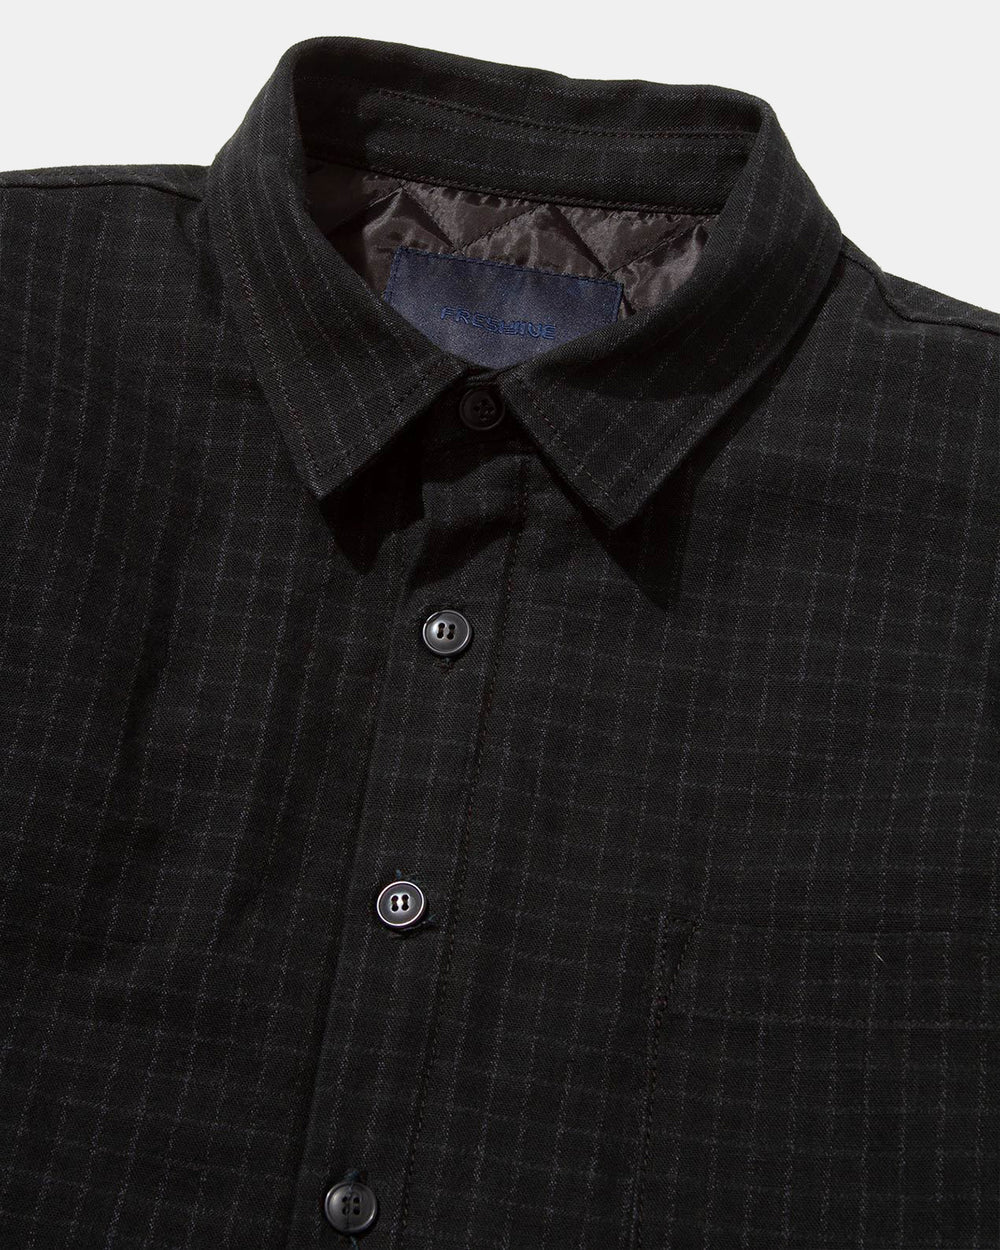 Freshjive - Chavelo Jacket (Charcoal Plaid)